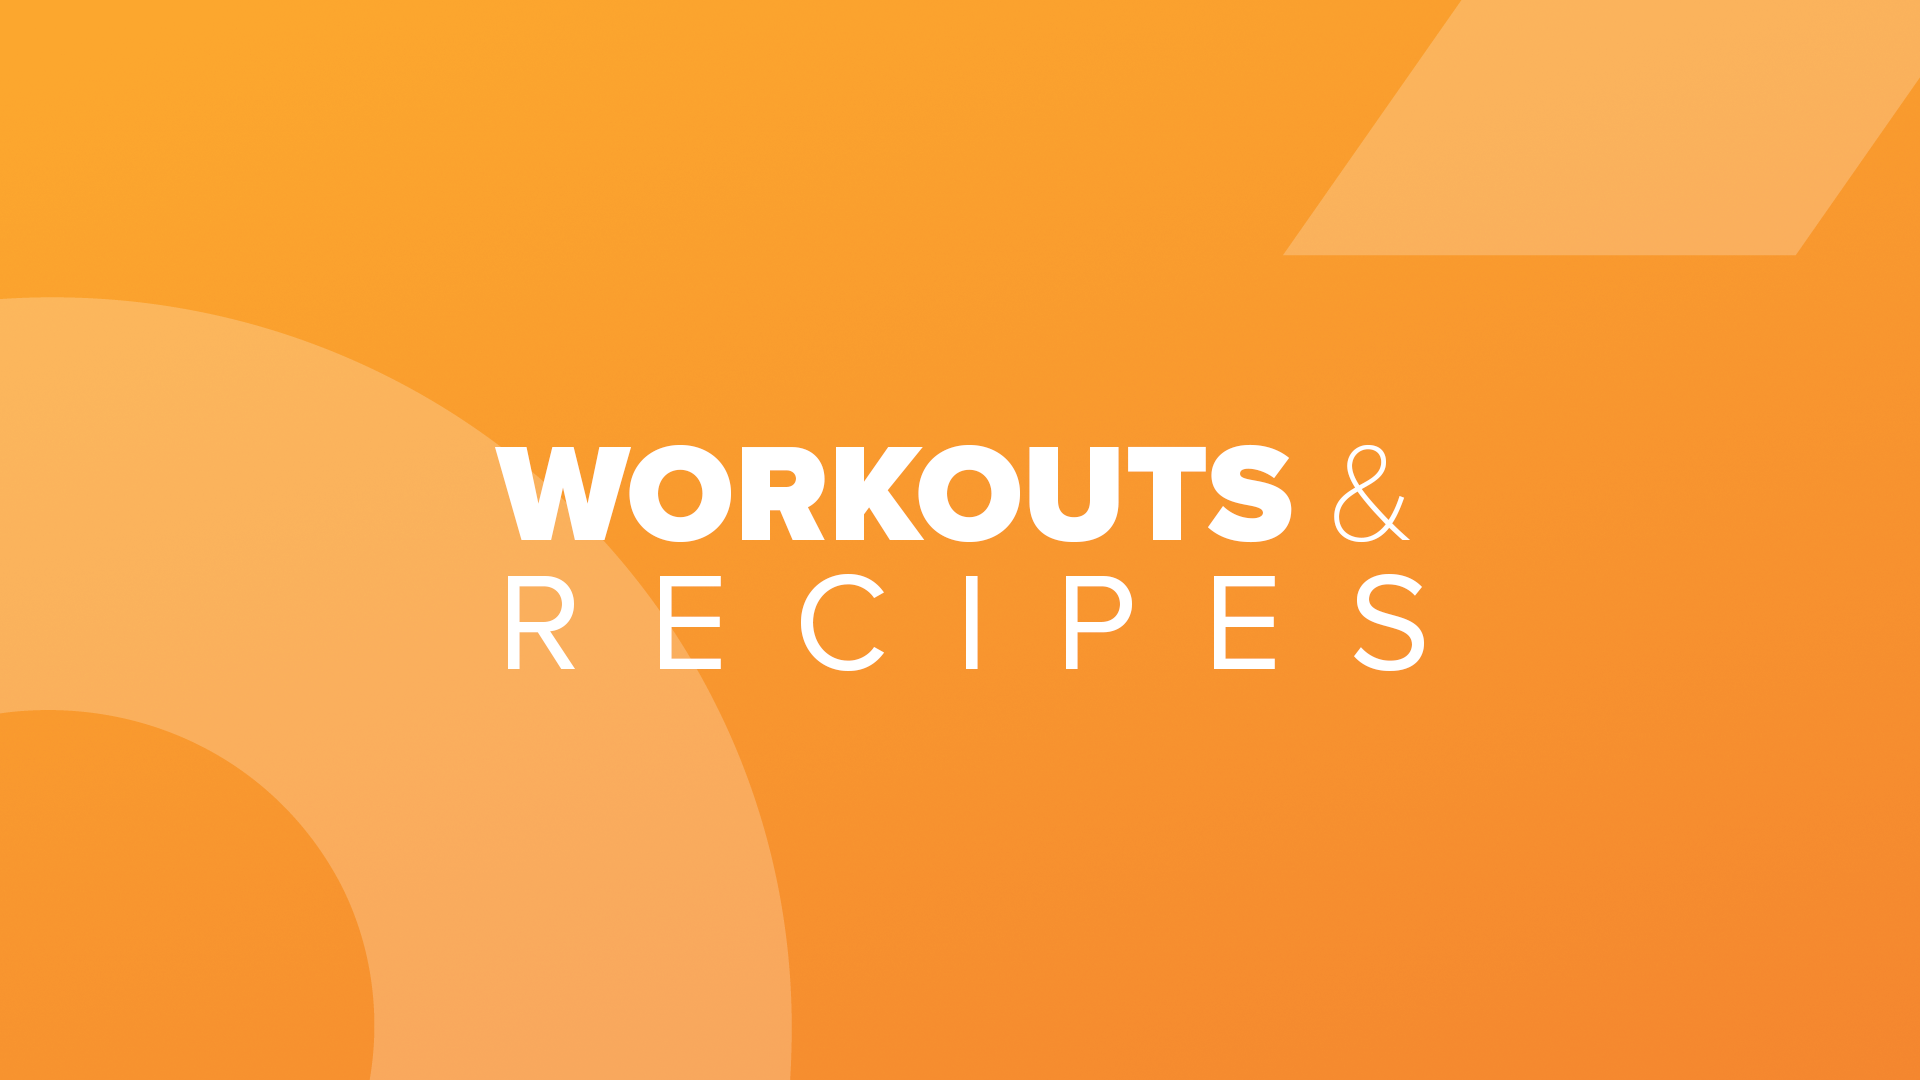 Workouts and Recipes